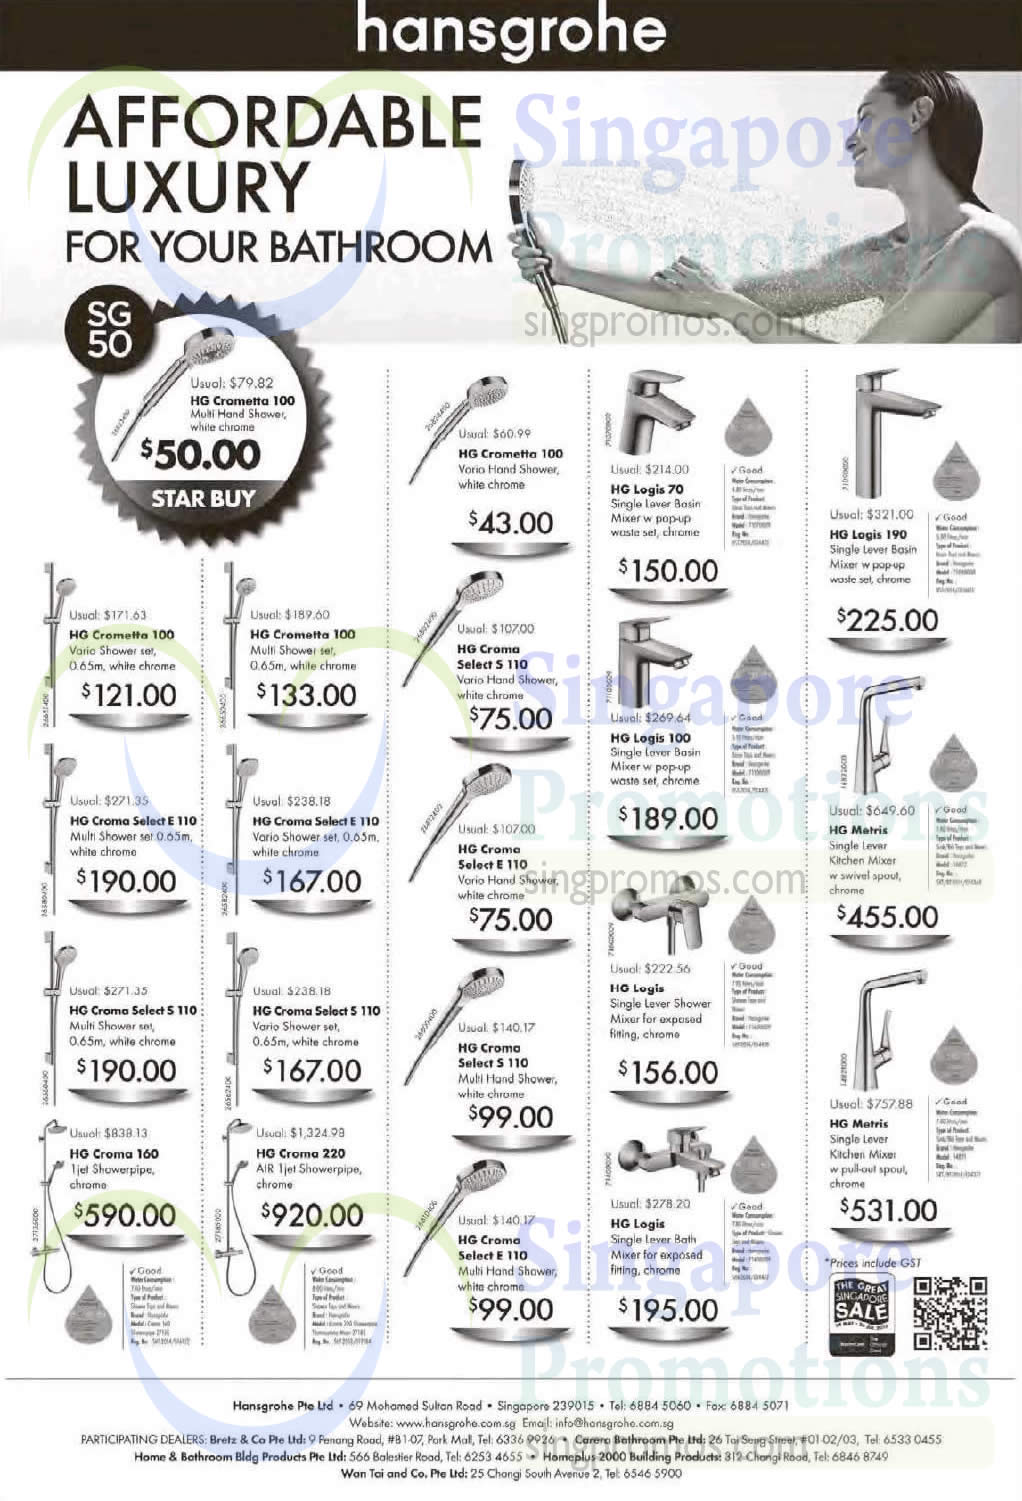 Hansgrohe Bathroom Accessories Offers 30 May 2015